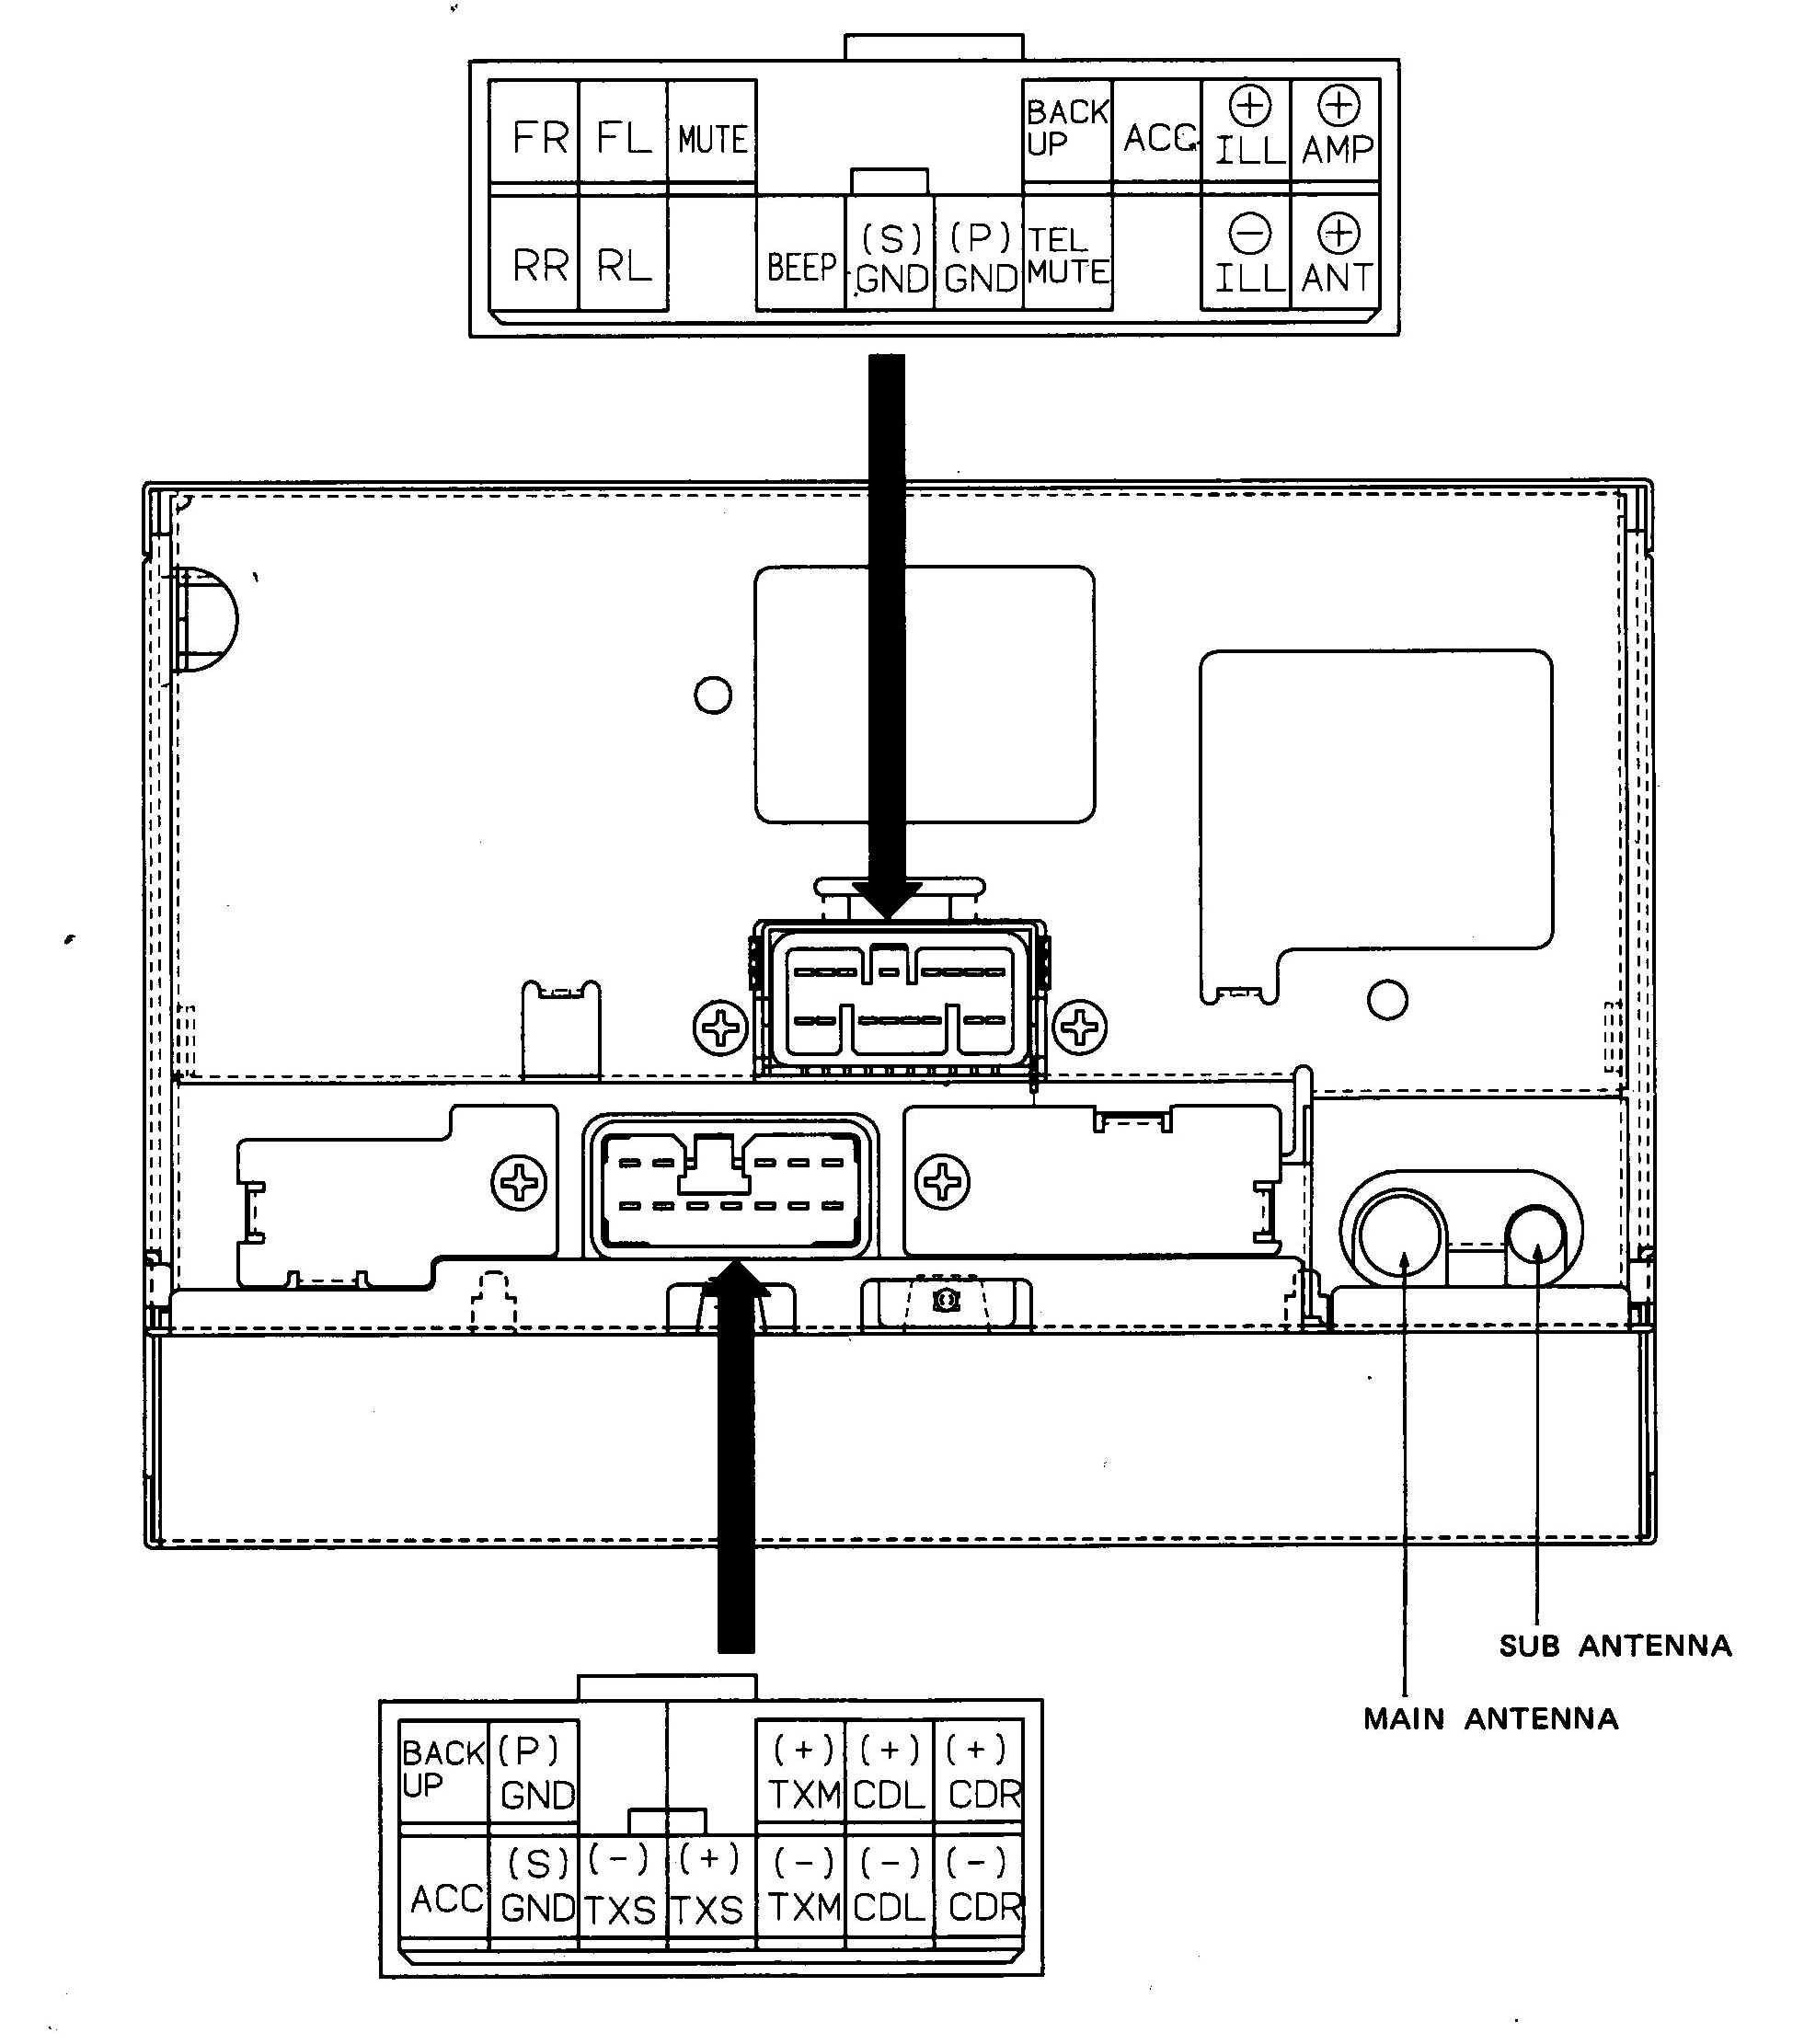 Stereo Wiring Help Great Design Of Diagram Head Unit 2001 Camaro 2000 Lexus Gs300 Radio 37 For 2005 Sienna